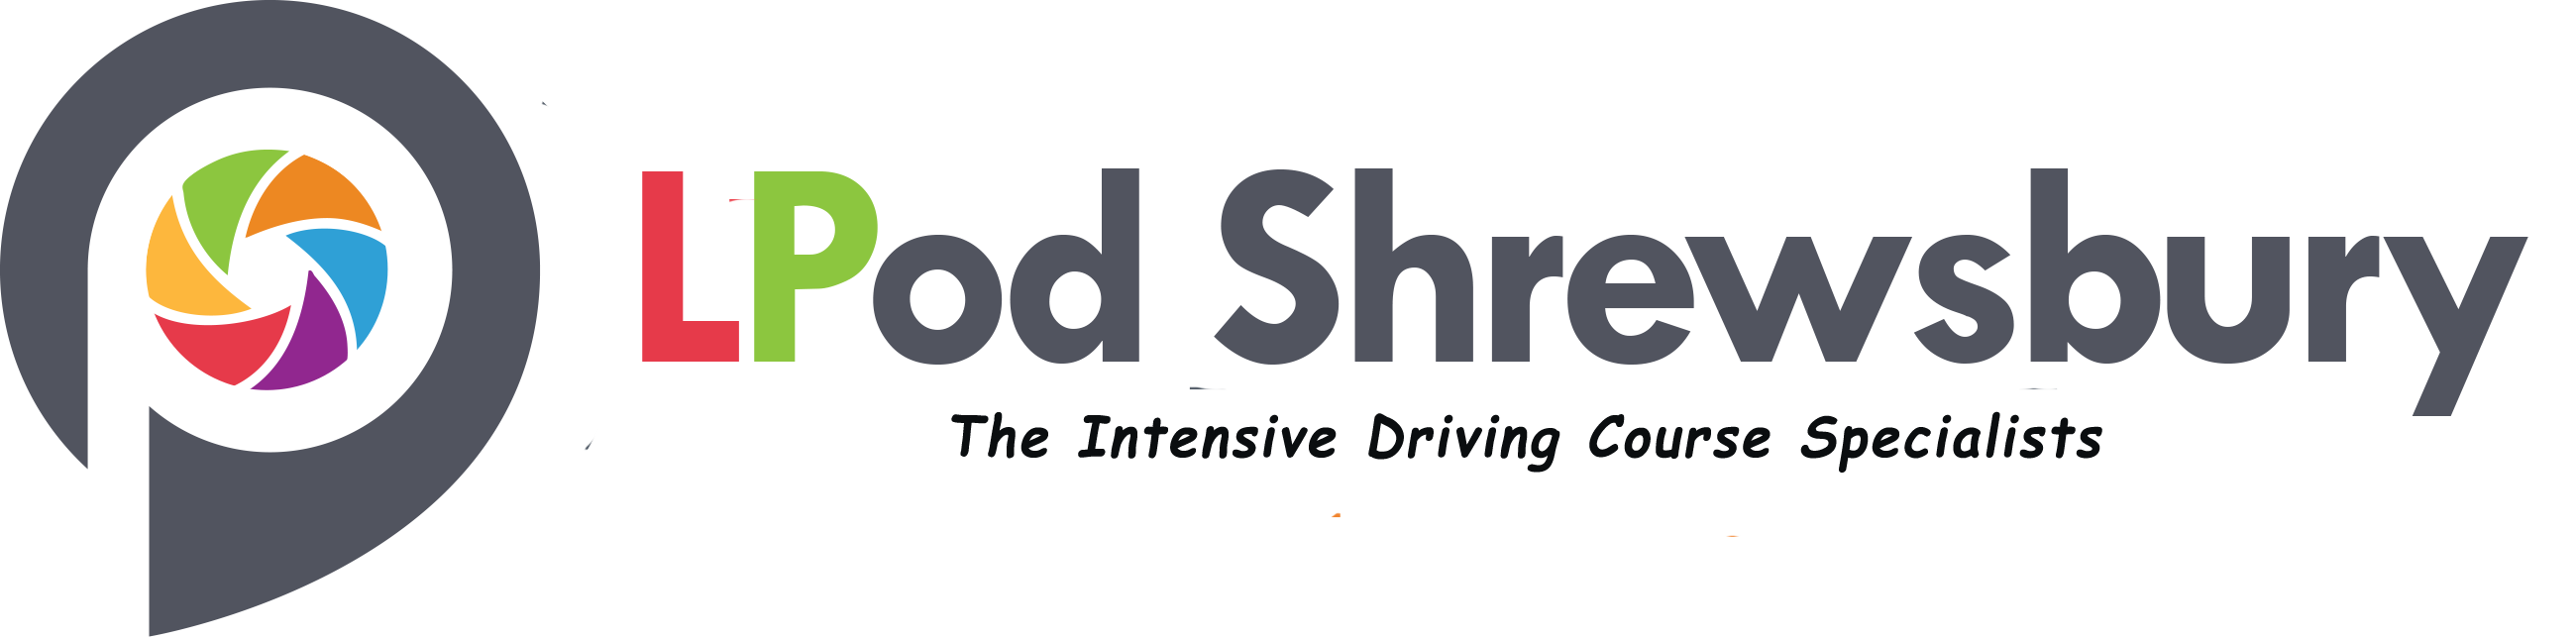 intensive driving courses shrewsbury, intensive driving lessons shrewsbury